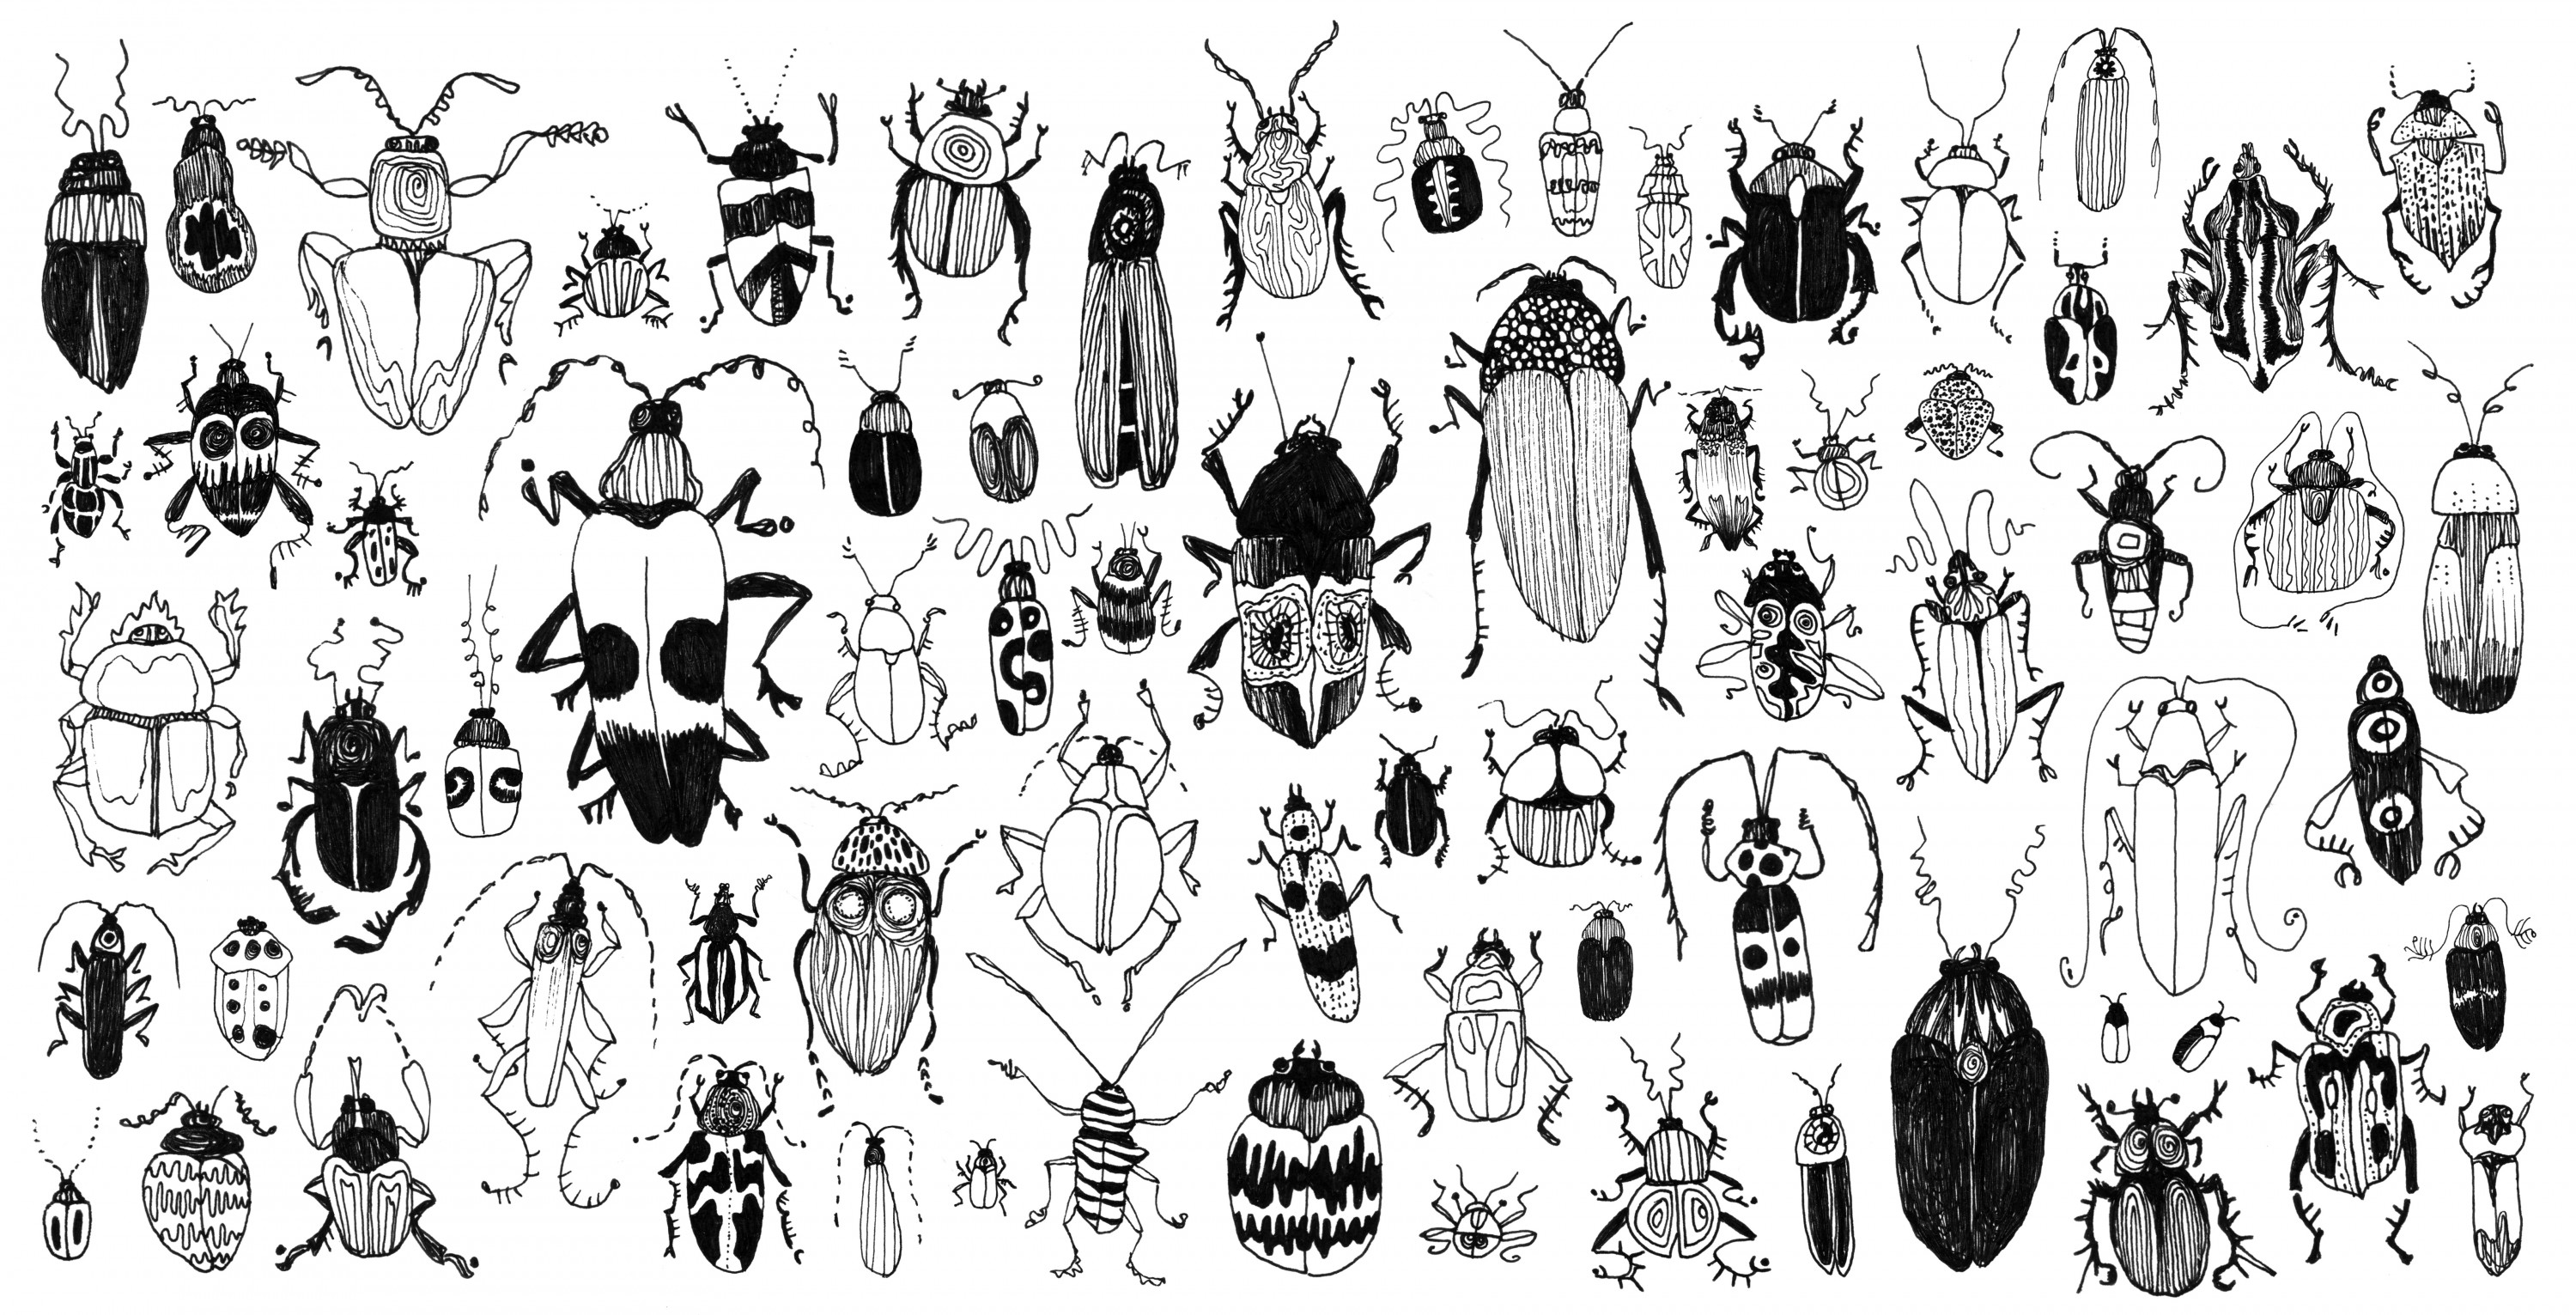 Beetles are the most diverse group of organisms on Earth, and account for one quarter of all known species of plants and animals. There are more kinds of beetles than all plants.